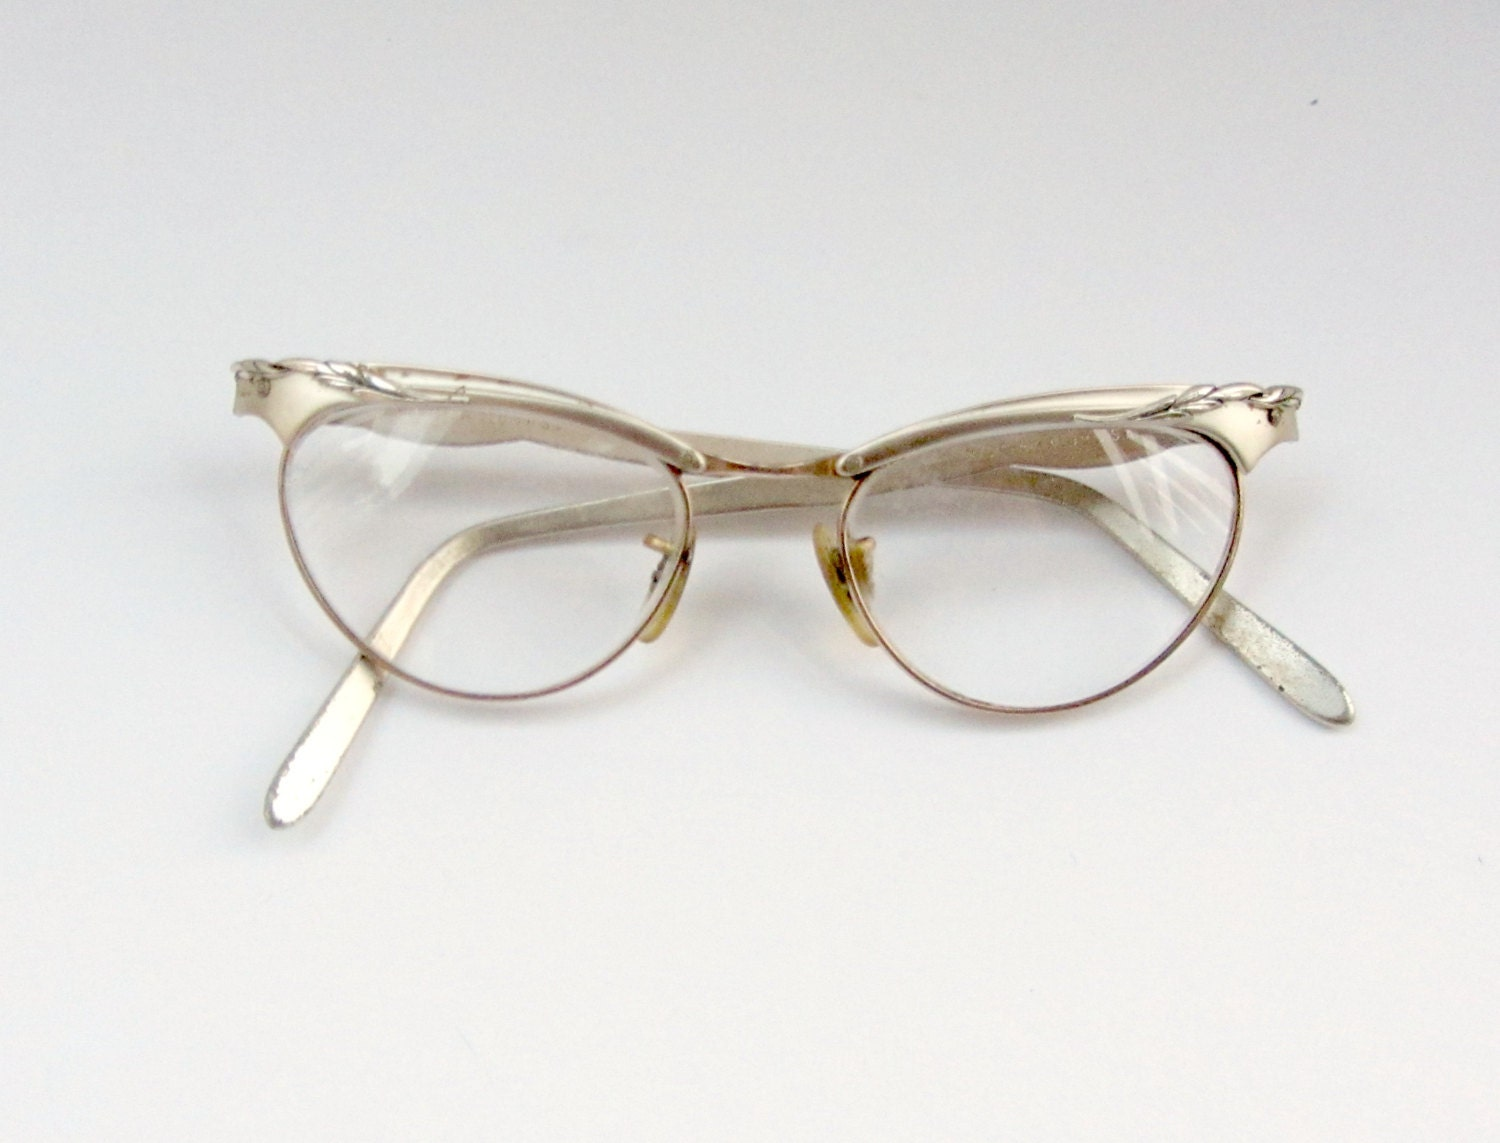 Wire Frame Glasses Vintage : Vintage 50s Cateye Glasses Metal Frame Eyeglasses 1950s Eye